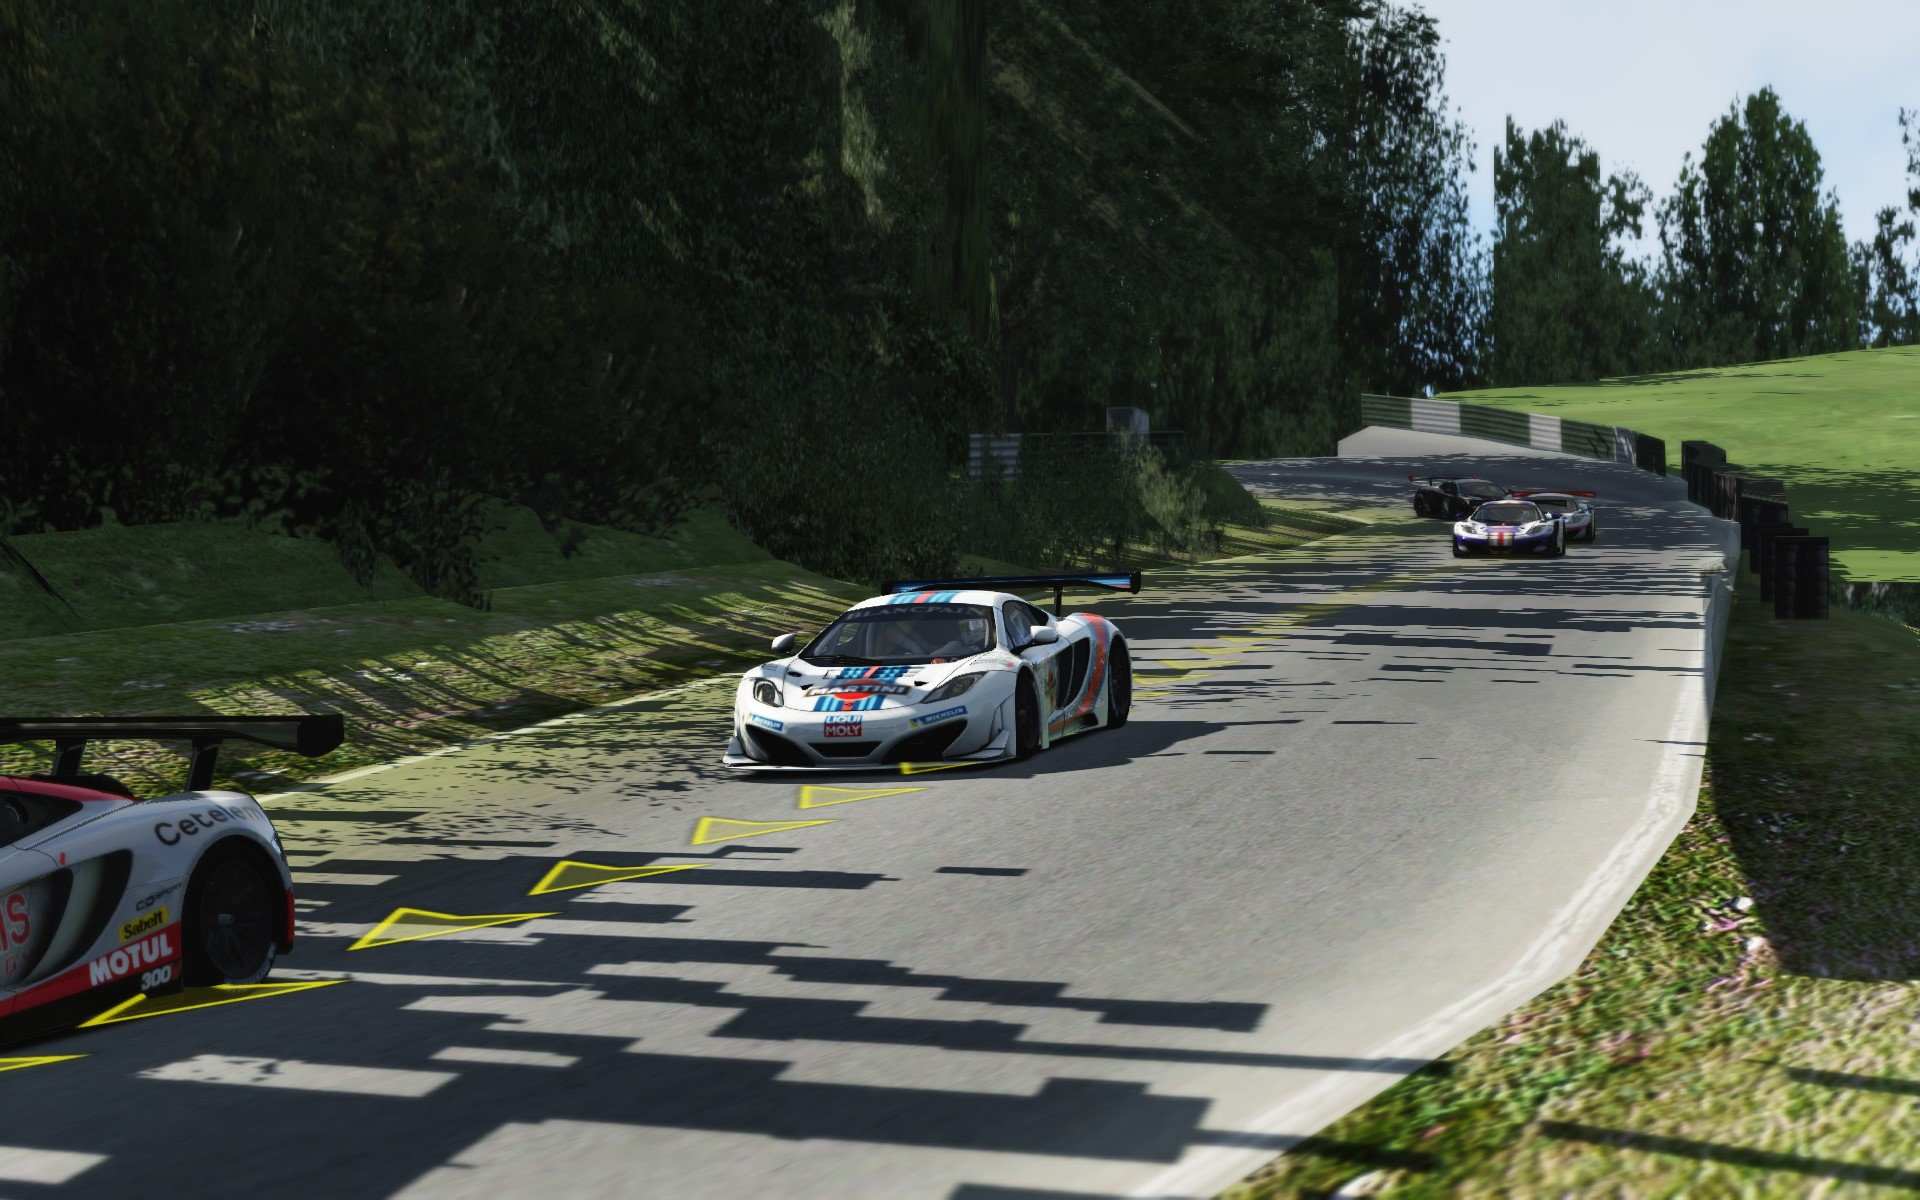 Screenshot_mclaren_mp412c_gt3_cadwell_21-6-115-15-29-9.jpg